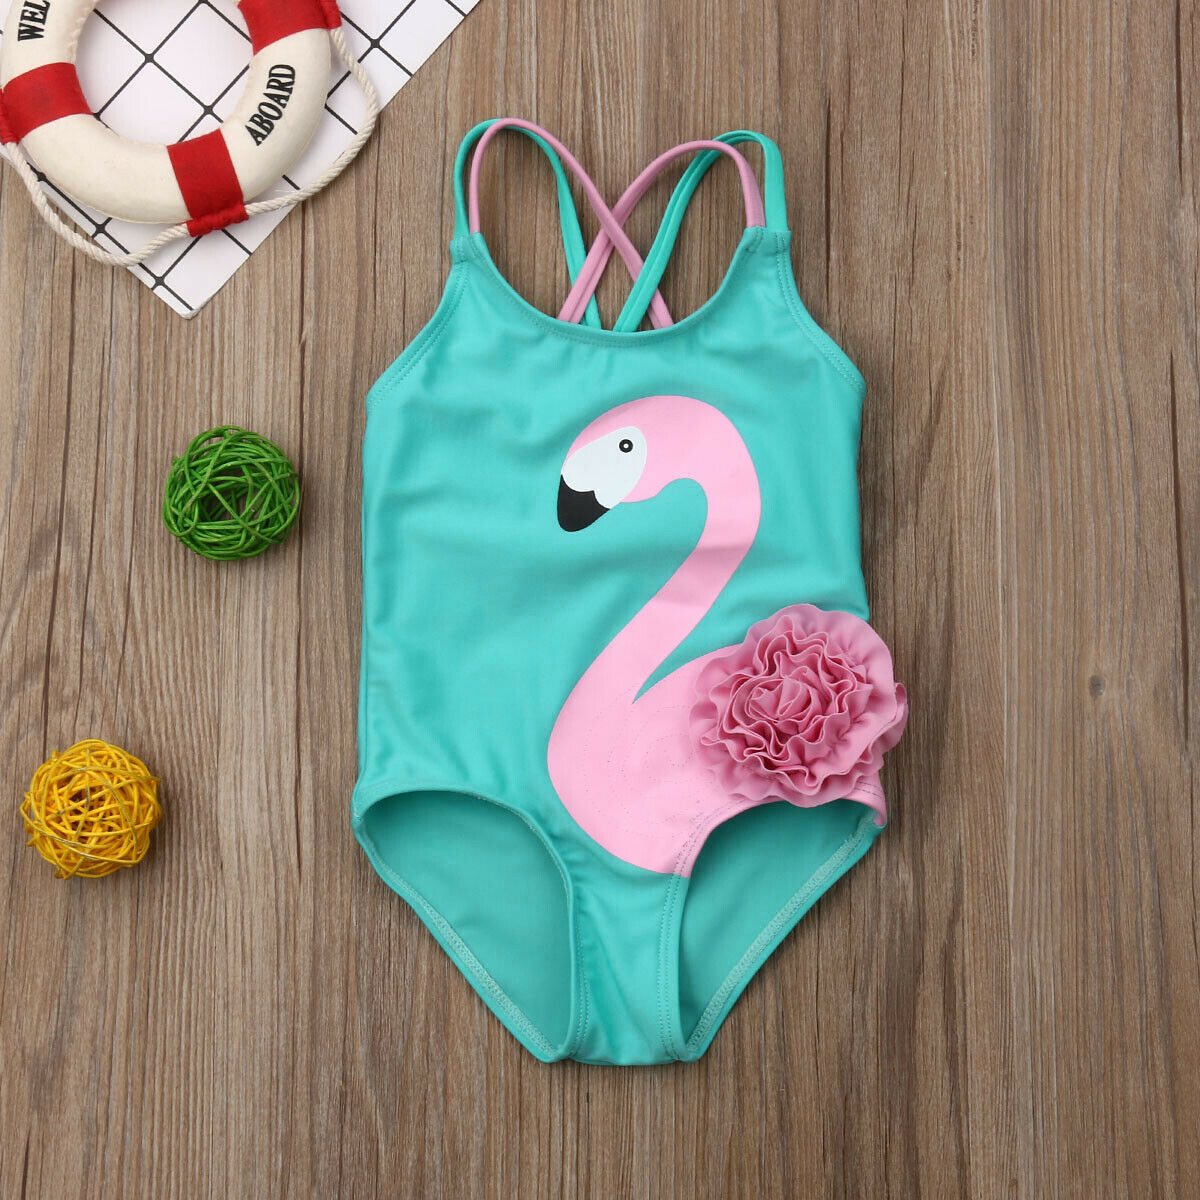 >Toddler <font><b>Kids</b></font> <font><b>Baby</b></font> <font><b>Girls</b></font> Flamingo Sleeveless Bikini Swimwear Swimsuit Beachwear Bathing Suit